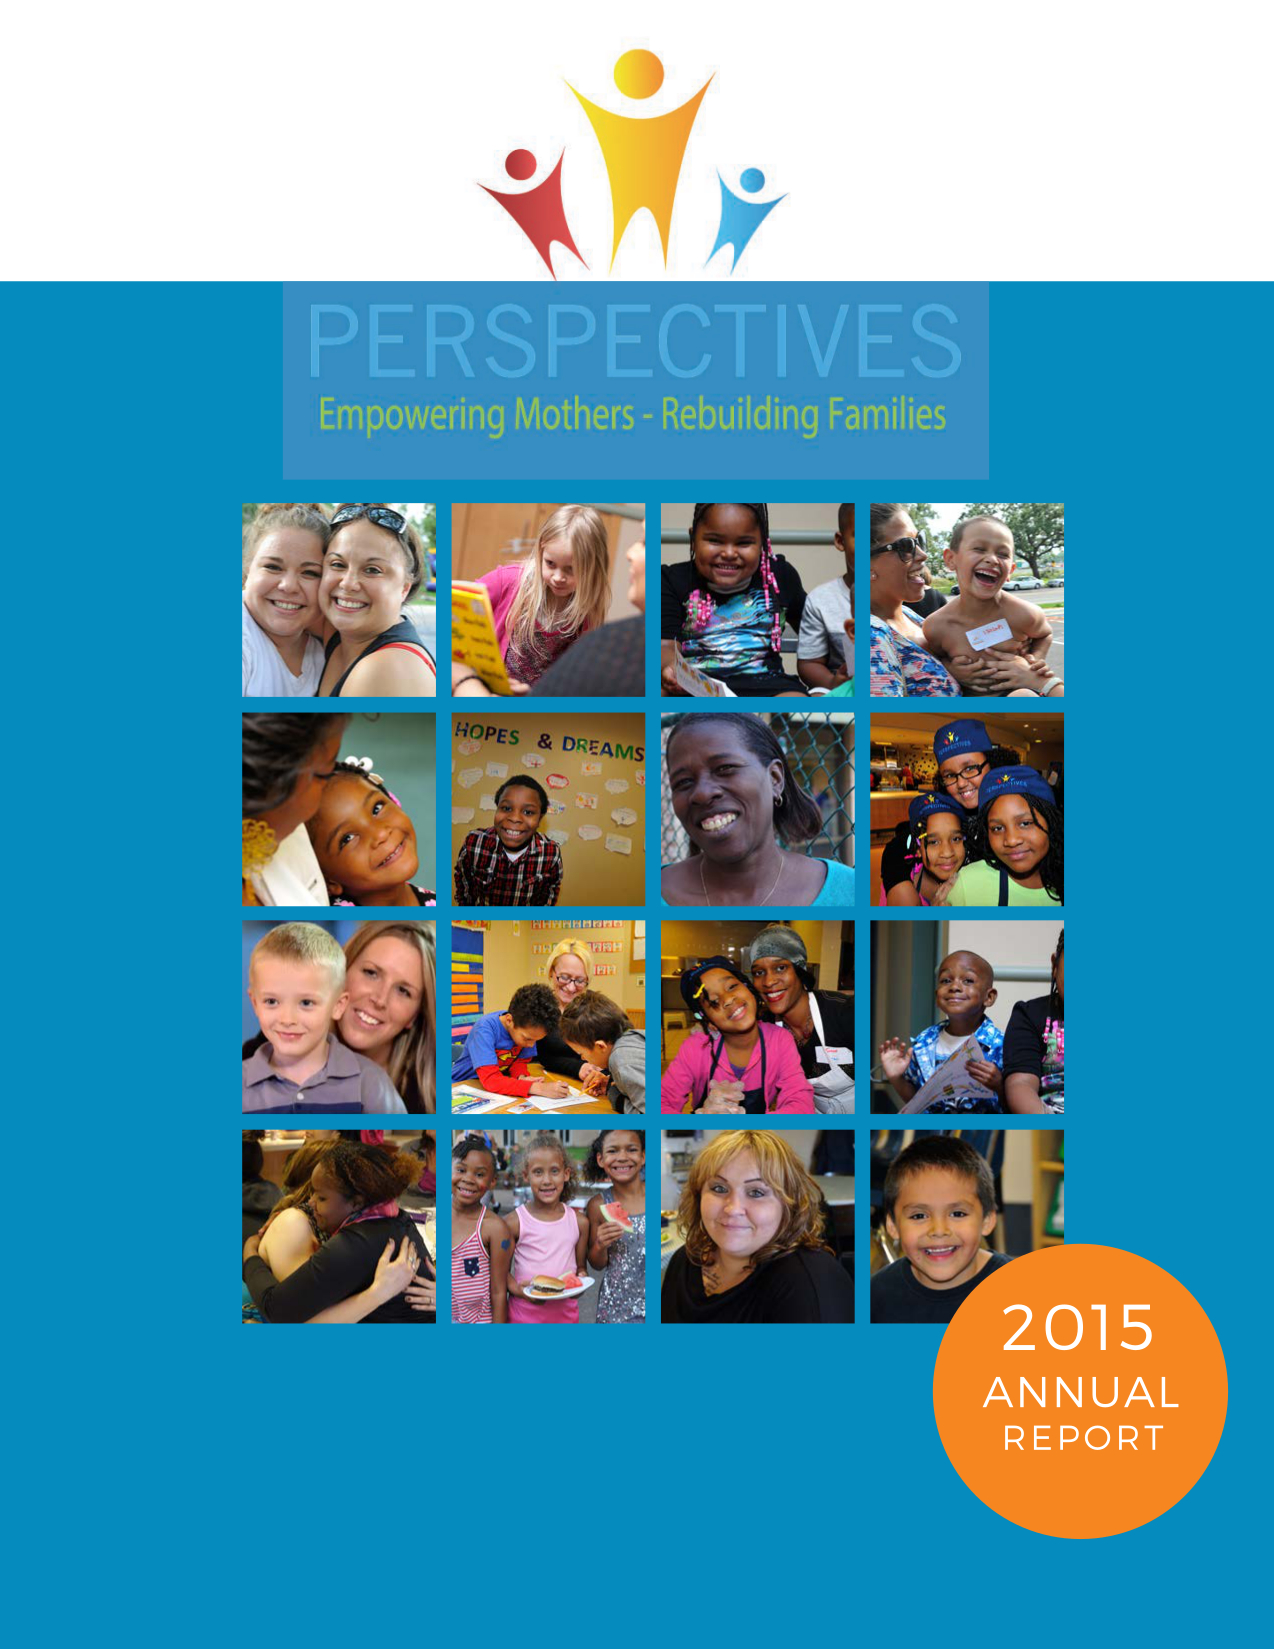 2015 Annual Report Cover.jpg